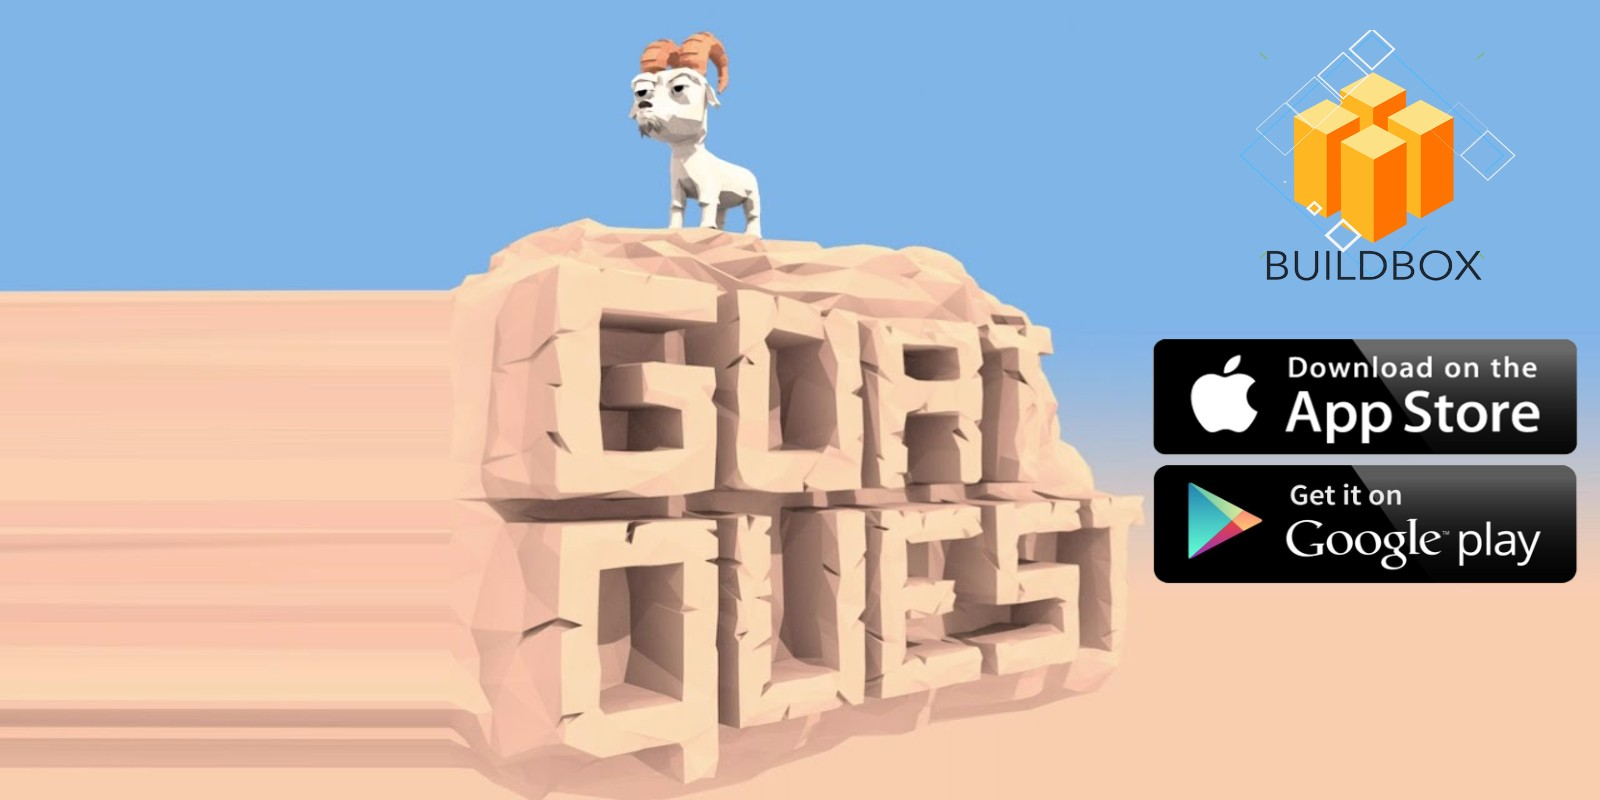 Goat Quest Buildbox Template